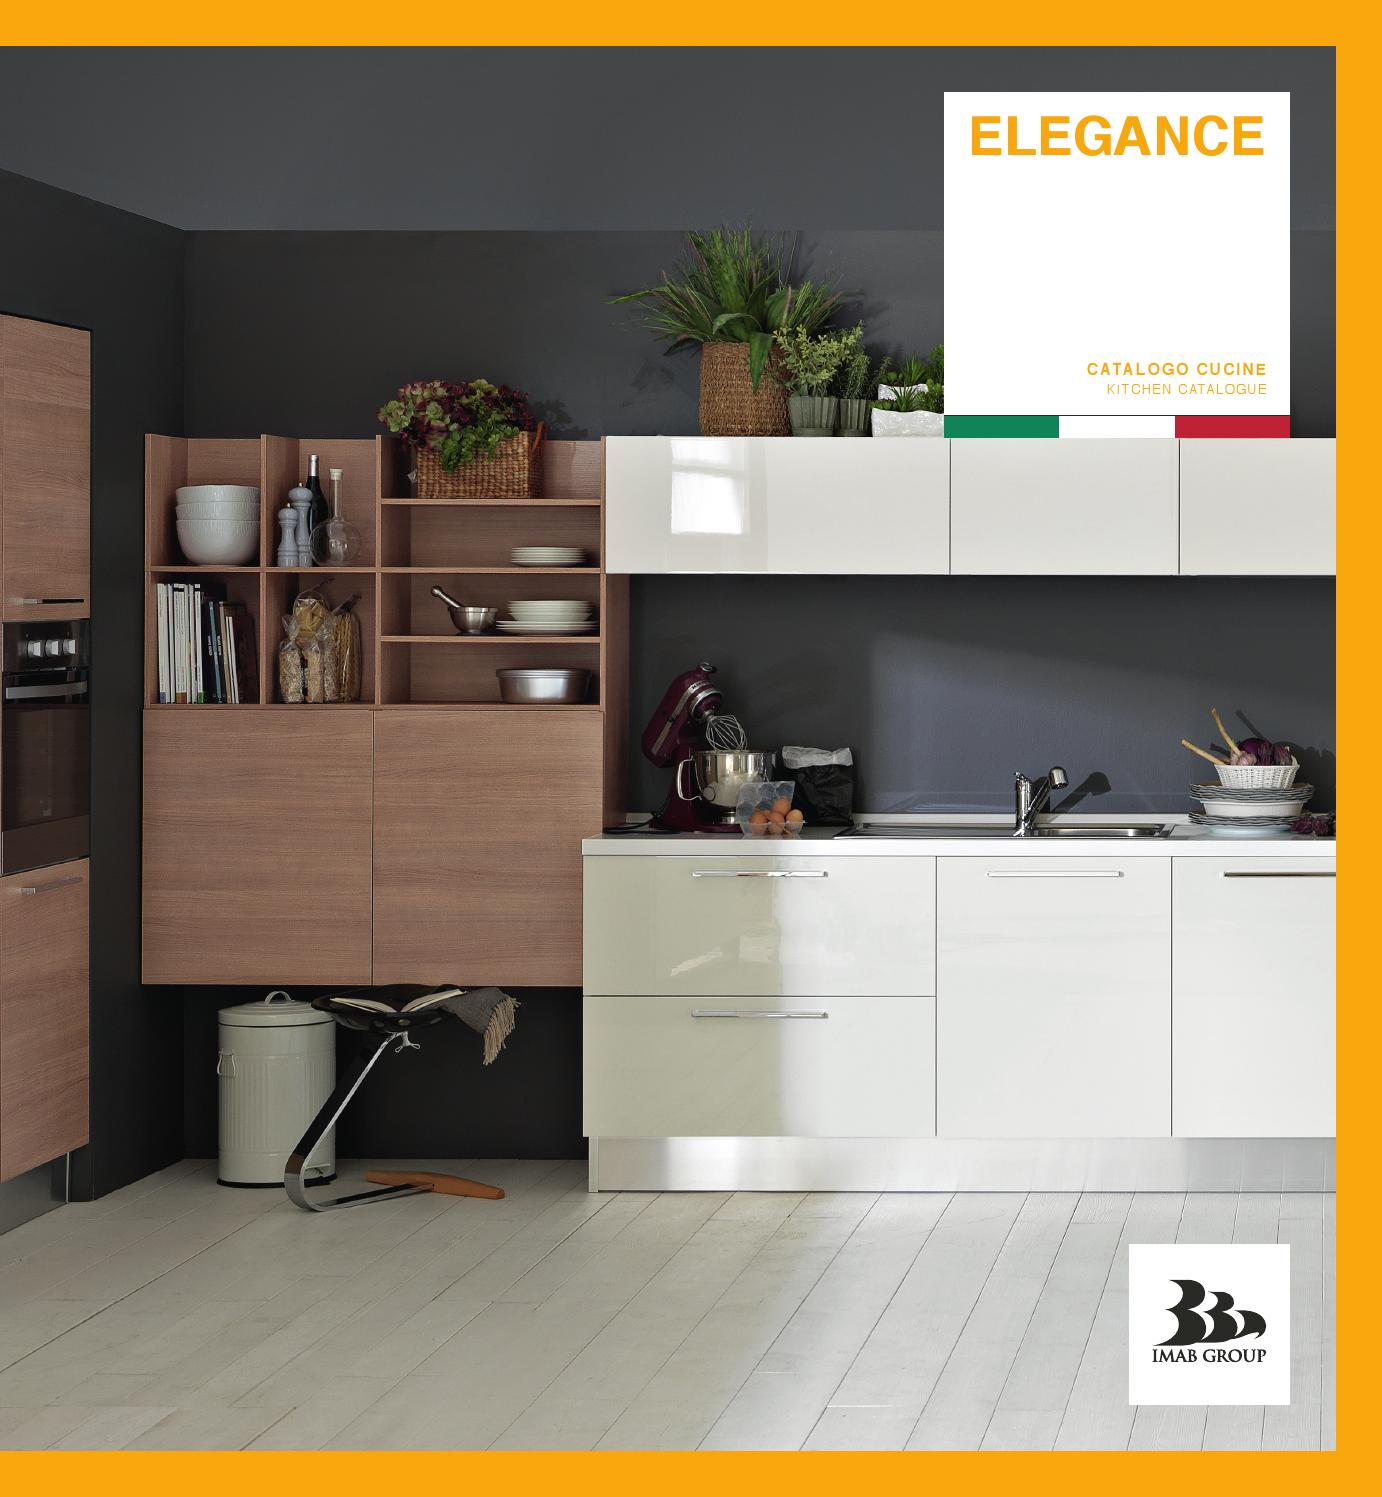 Catalogo elegance cucine by Mobilpro - issuu